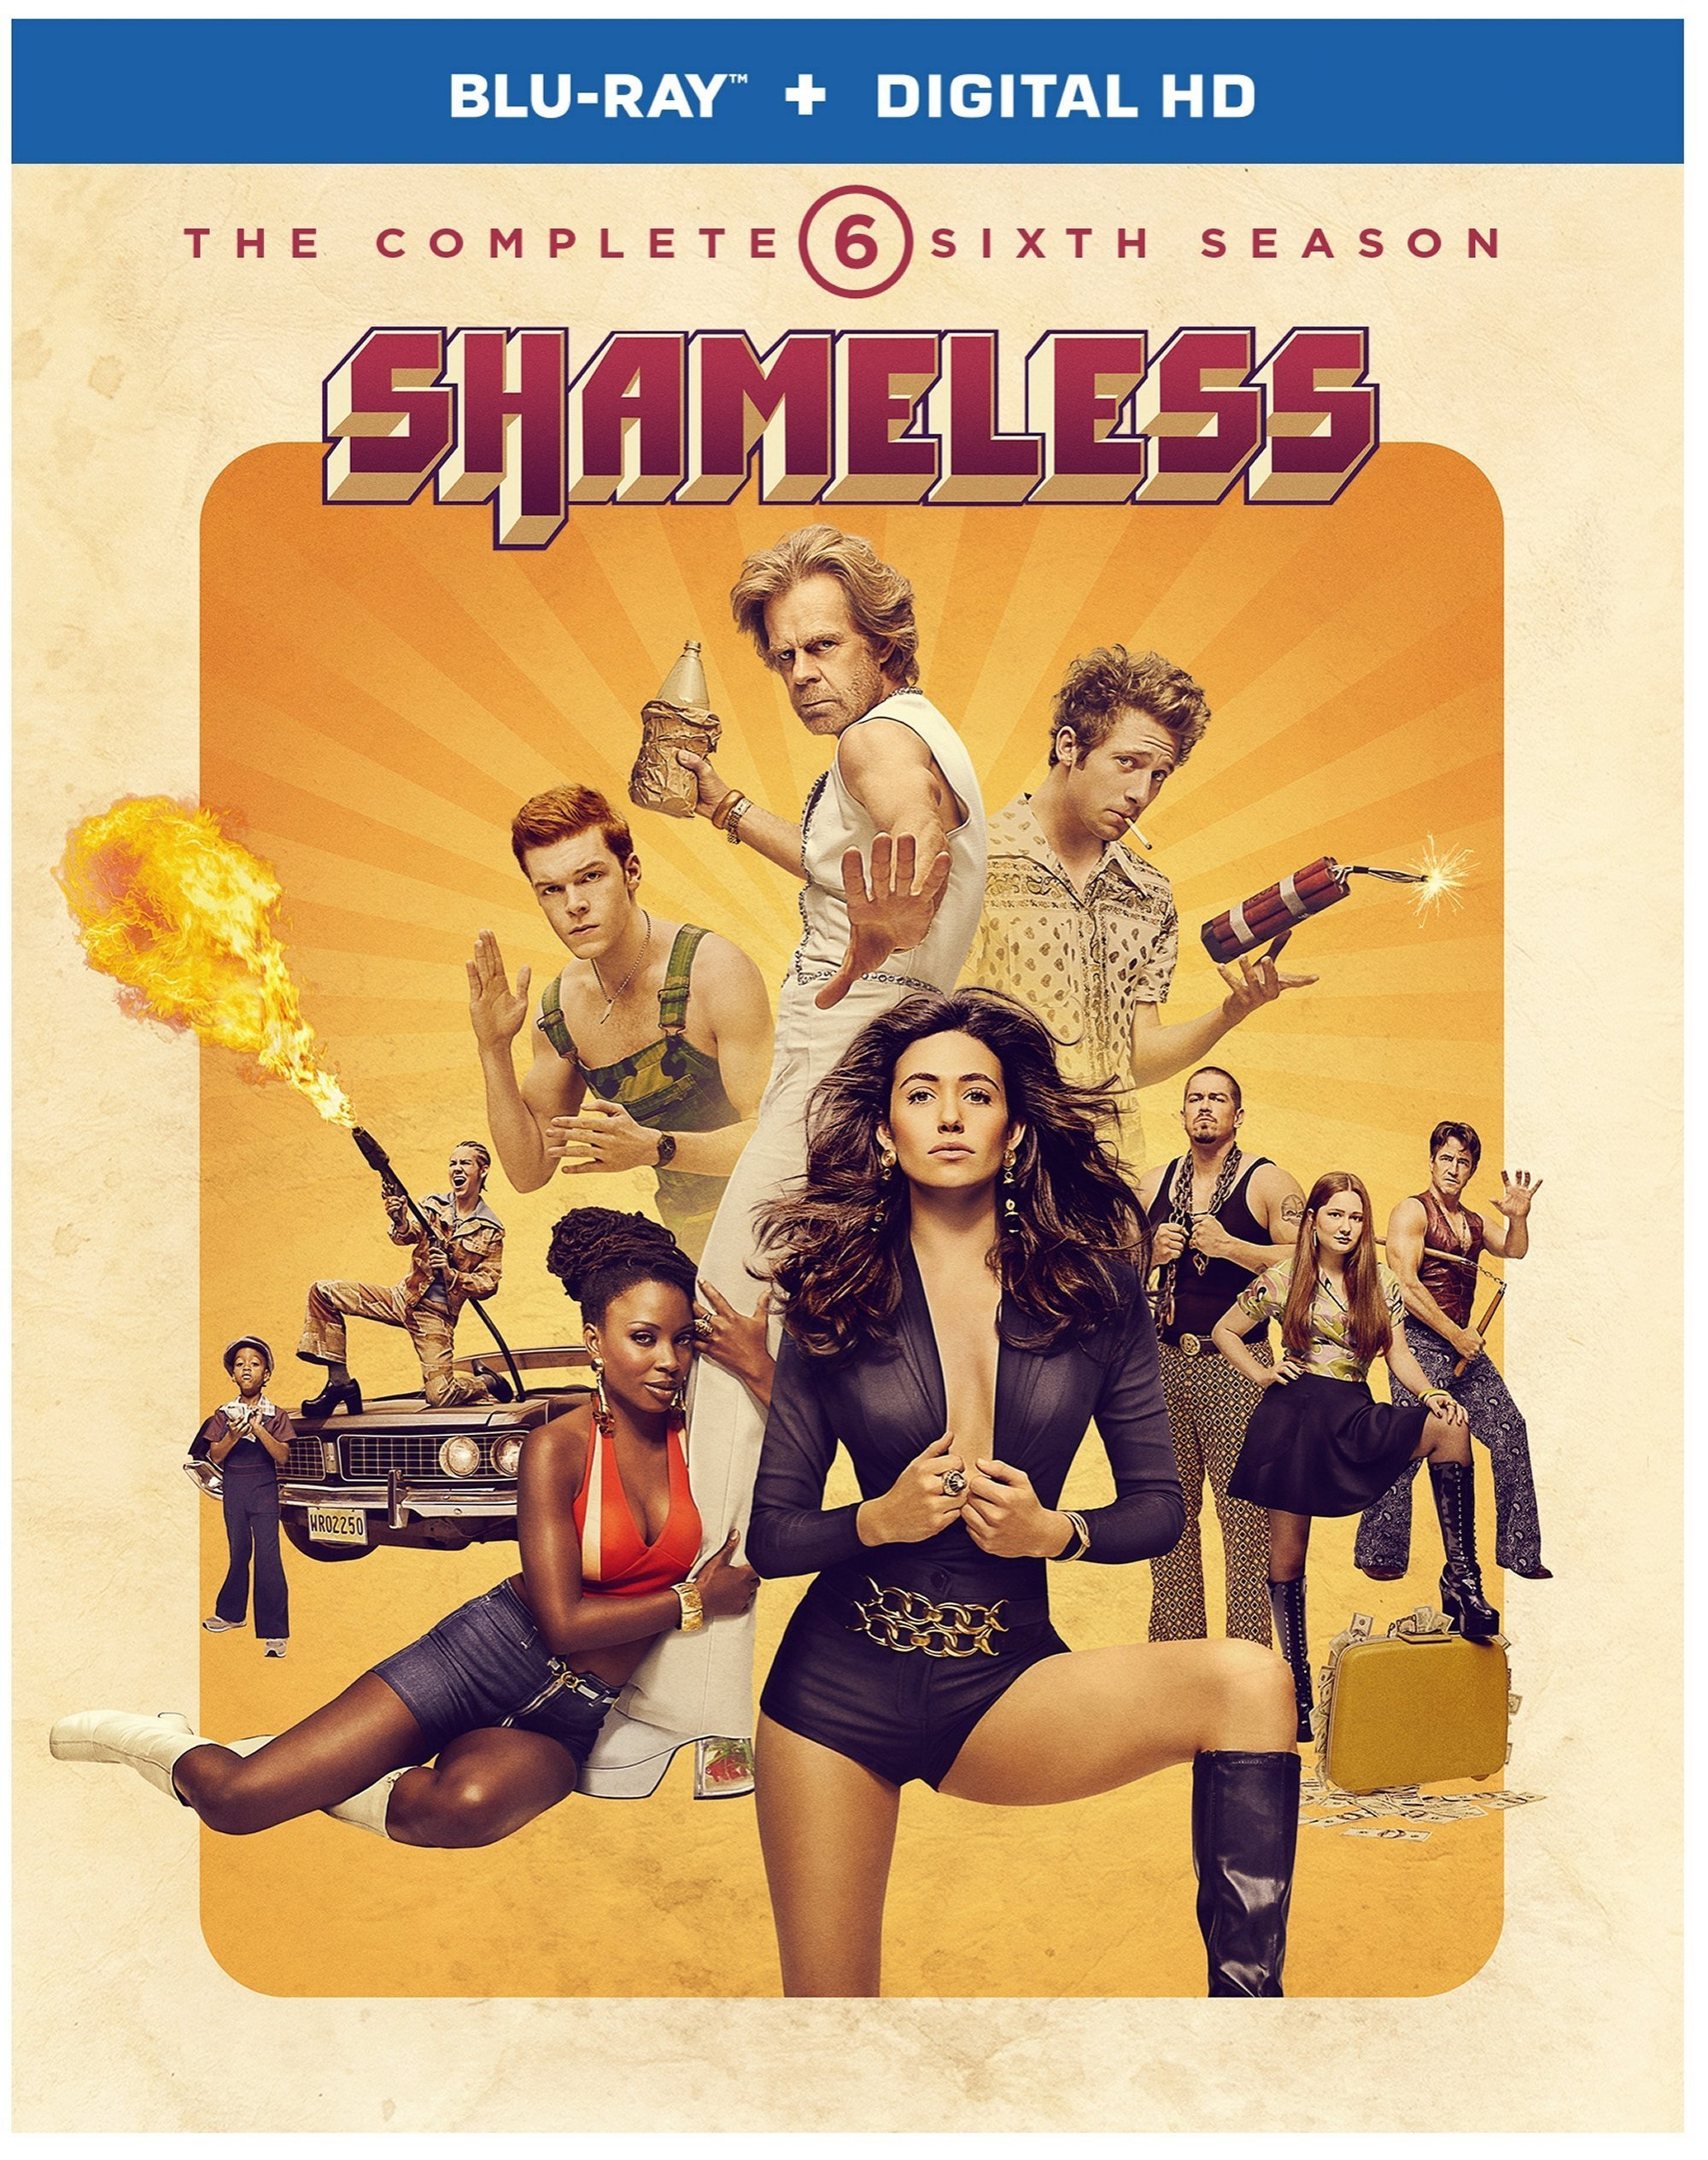 Blu-ray : Shameless: The Complete Sixth Season (Dolby, AC-3, , Dubbed, 2 Pack)